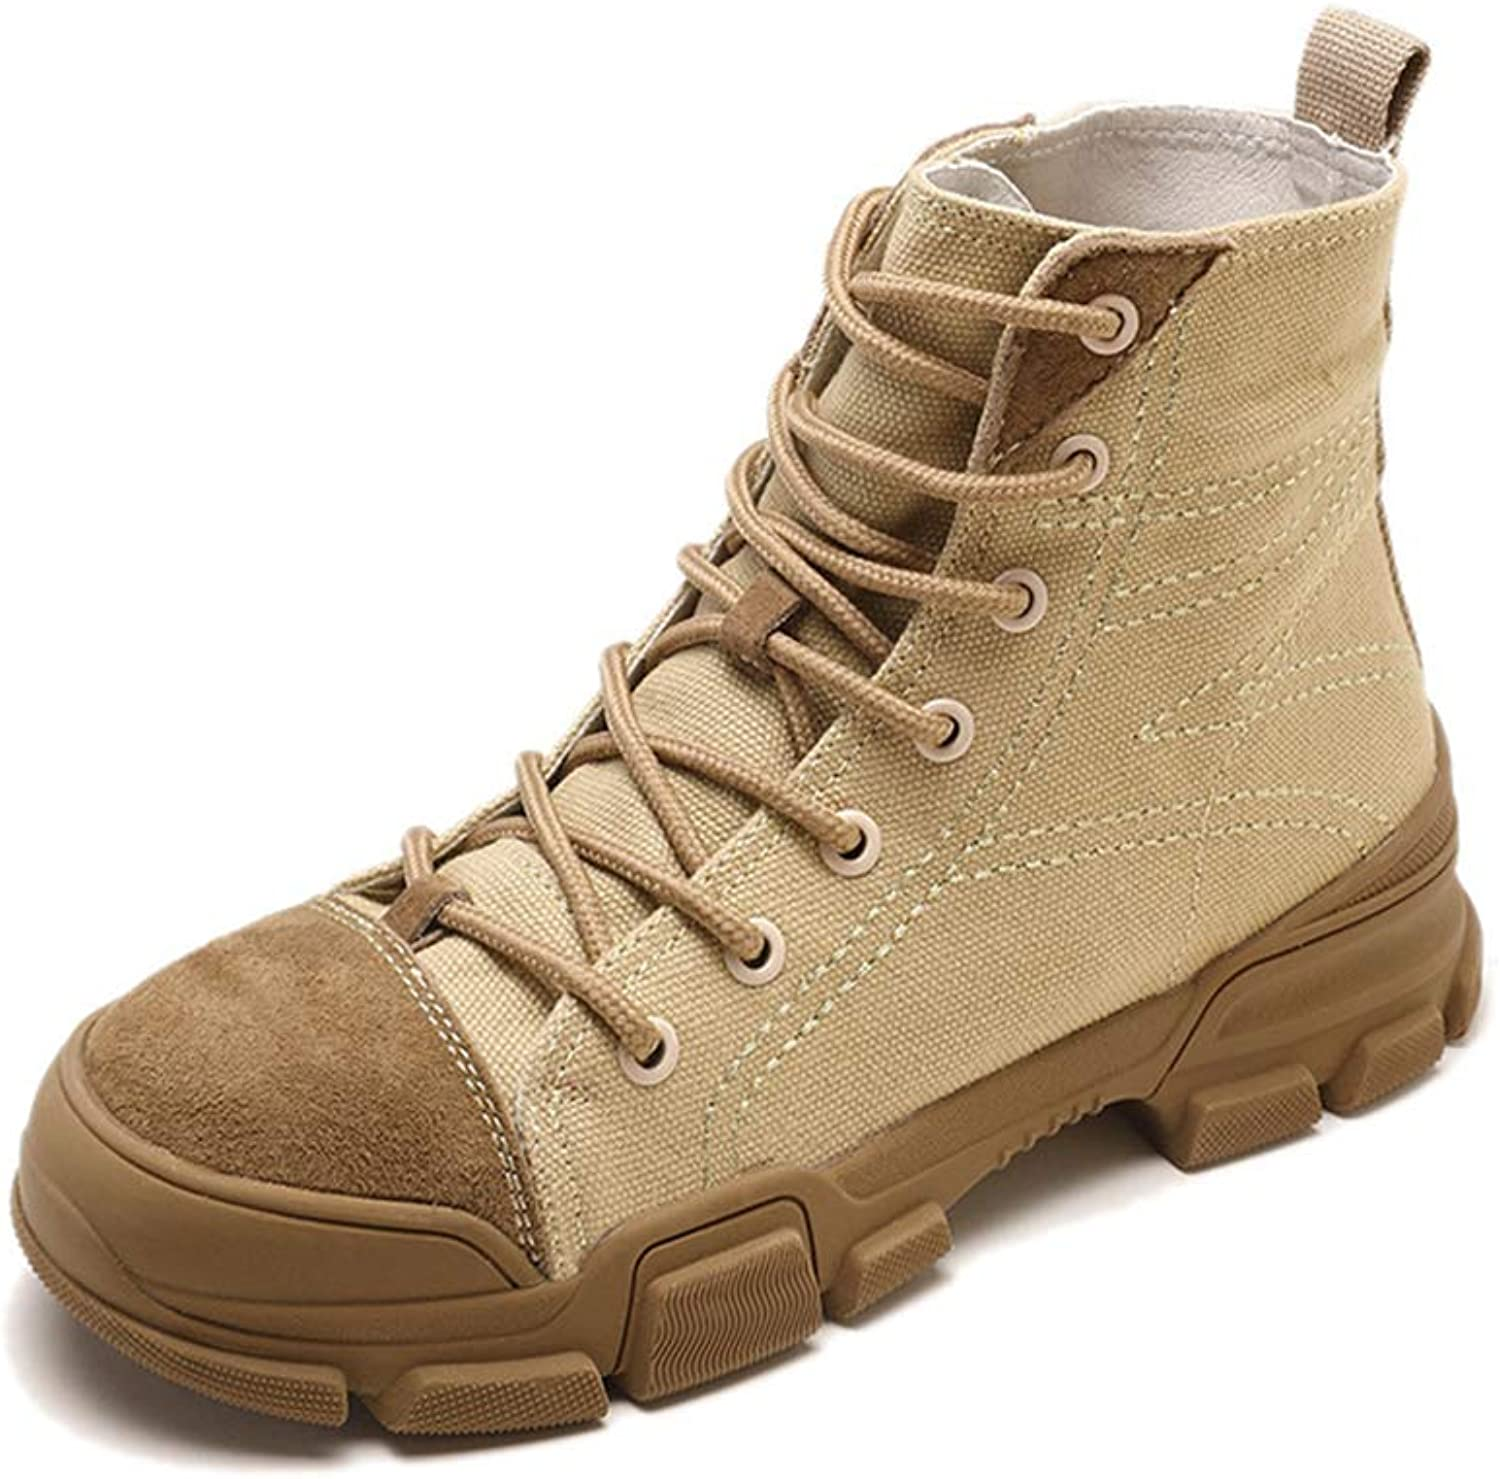 Super color Classic Women's Casual Work Boots Waterproof and Comfortable British Style Fashion Boots